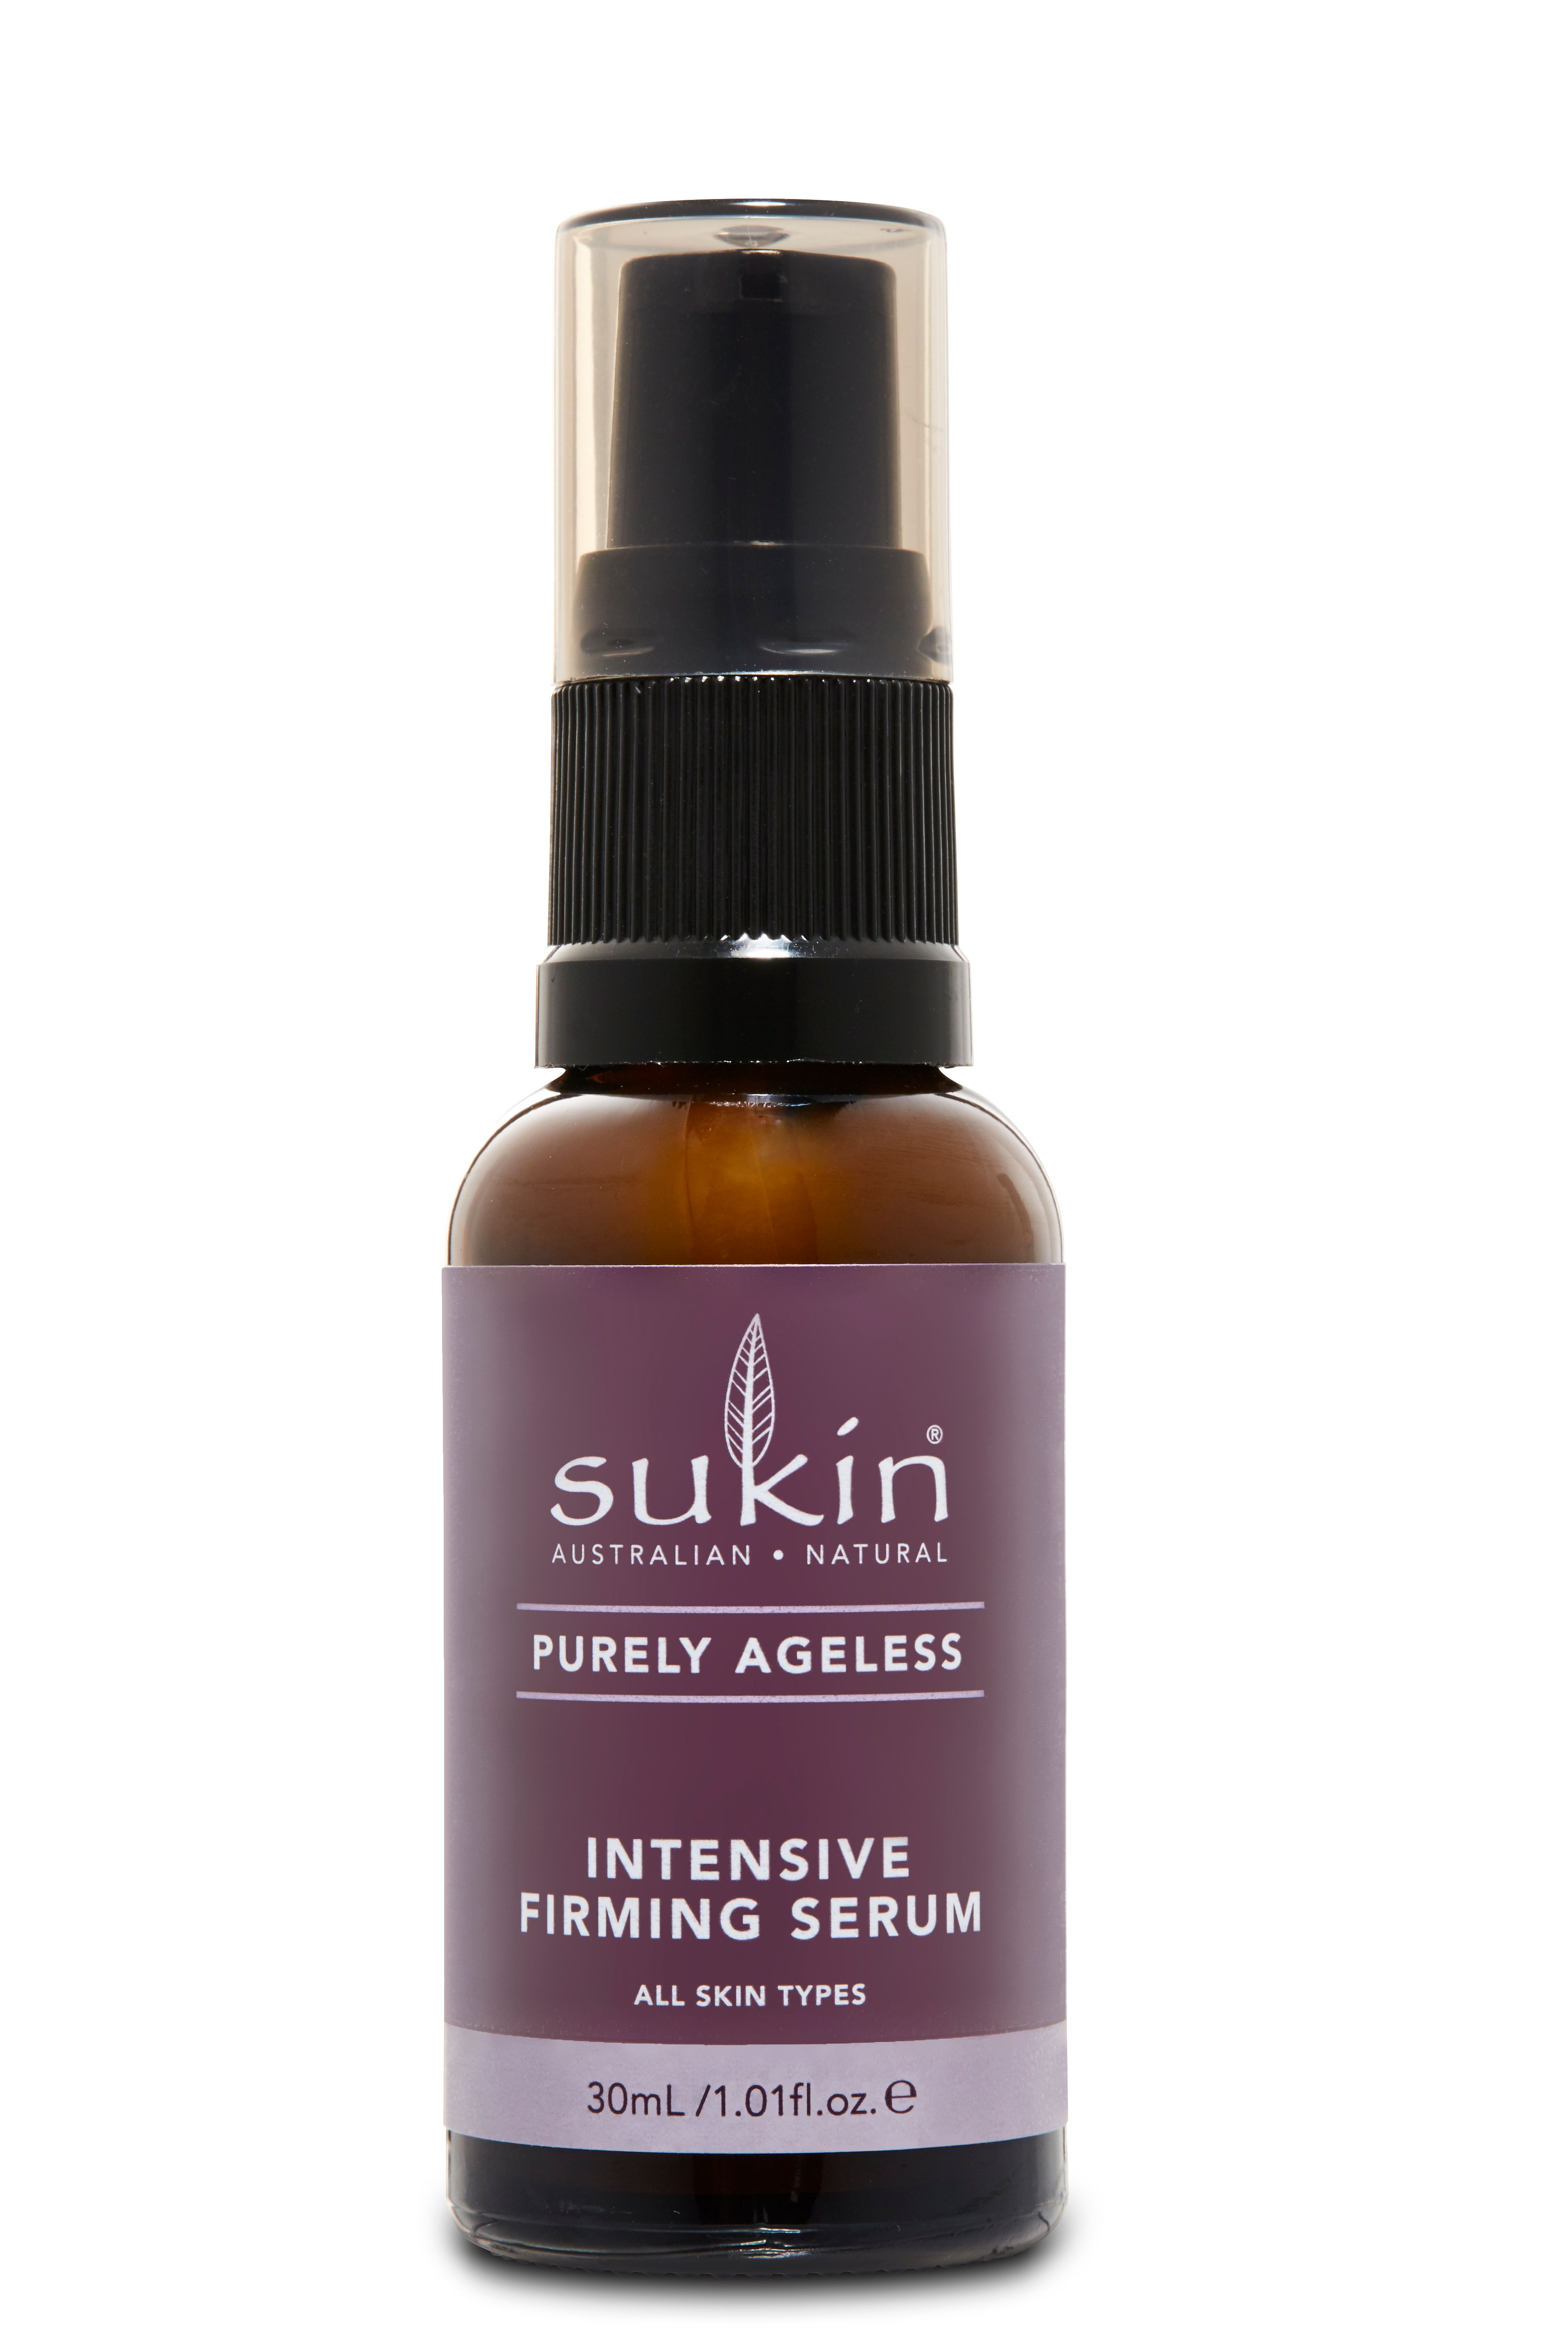 Sukin Purely Ageless Firming Serum 30ml